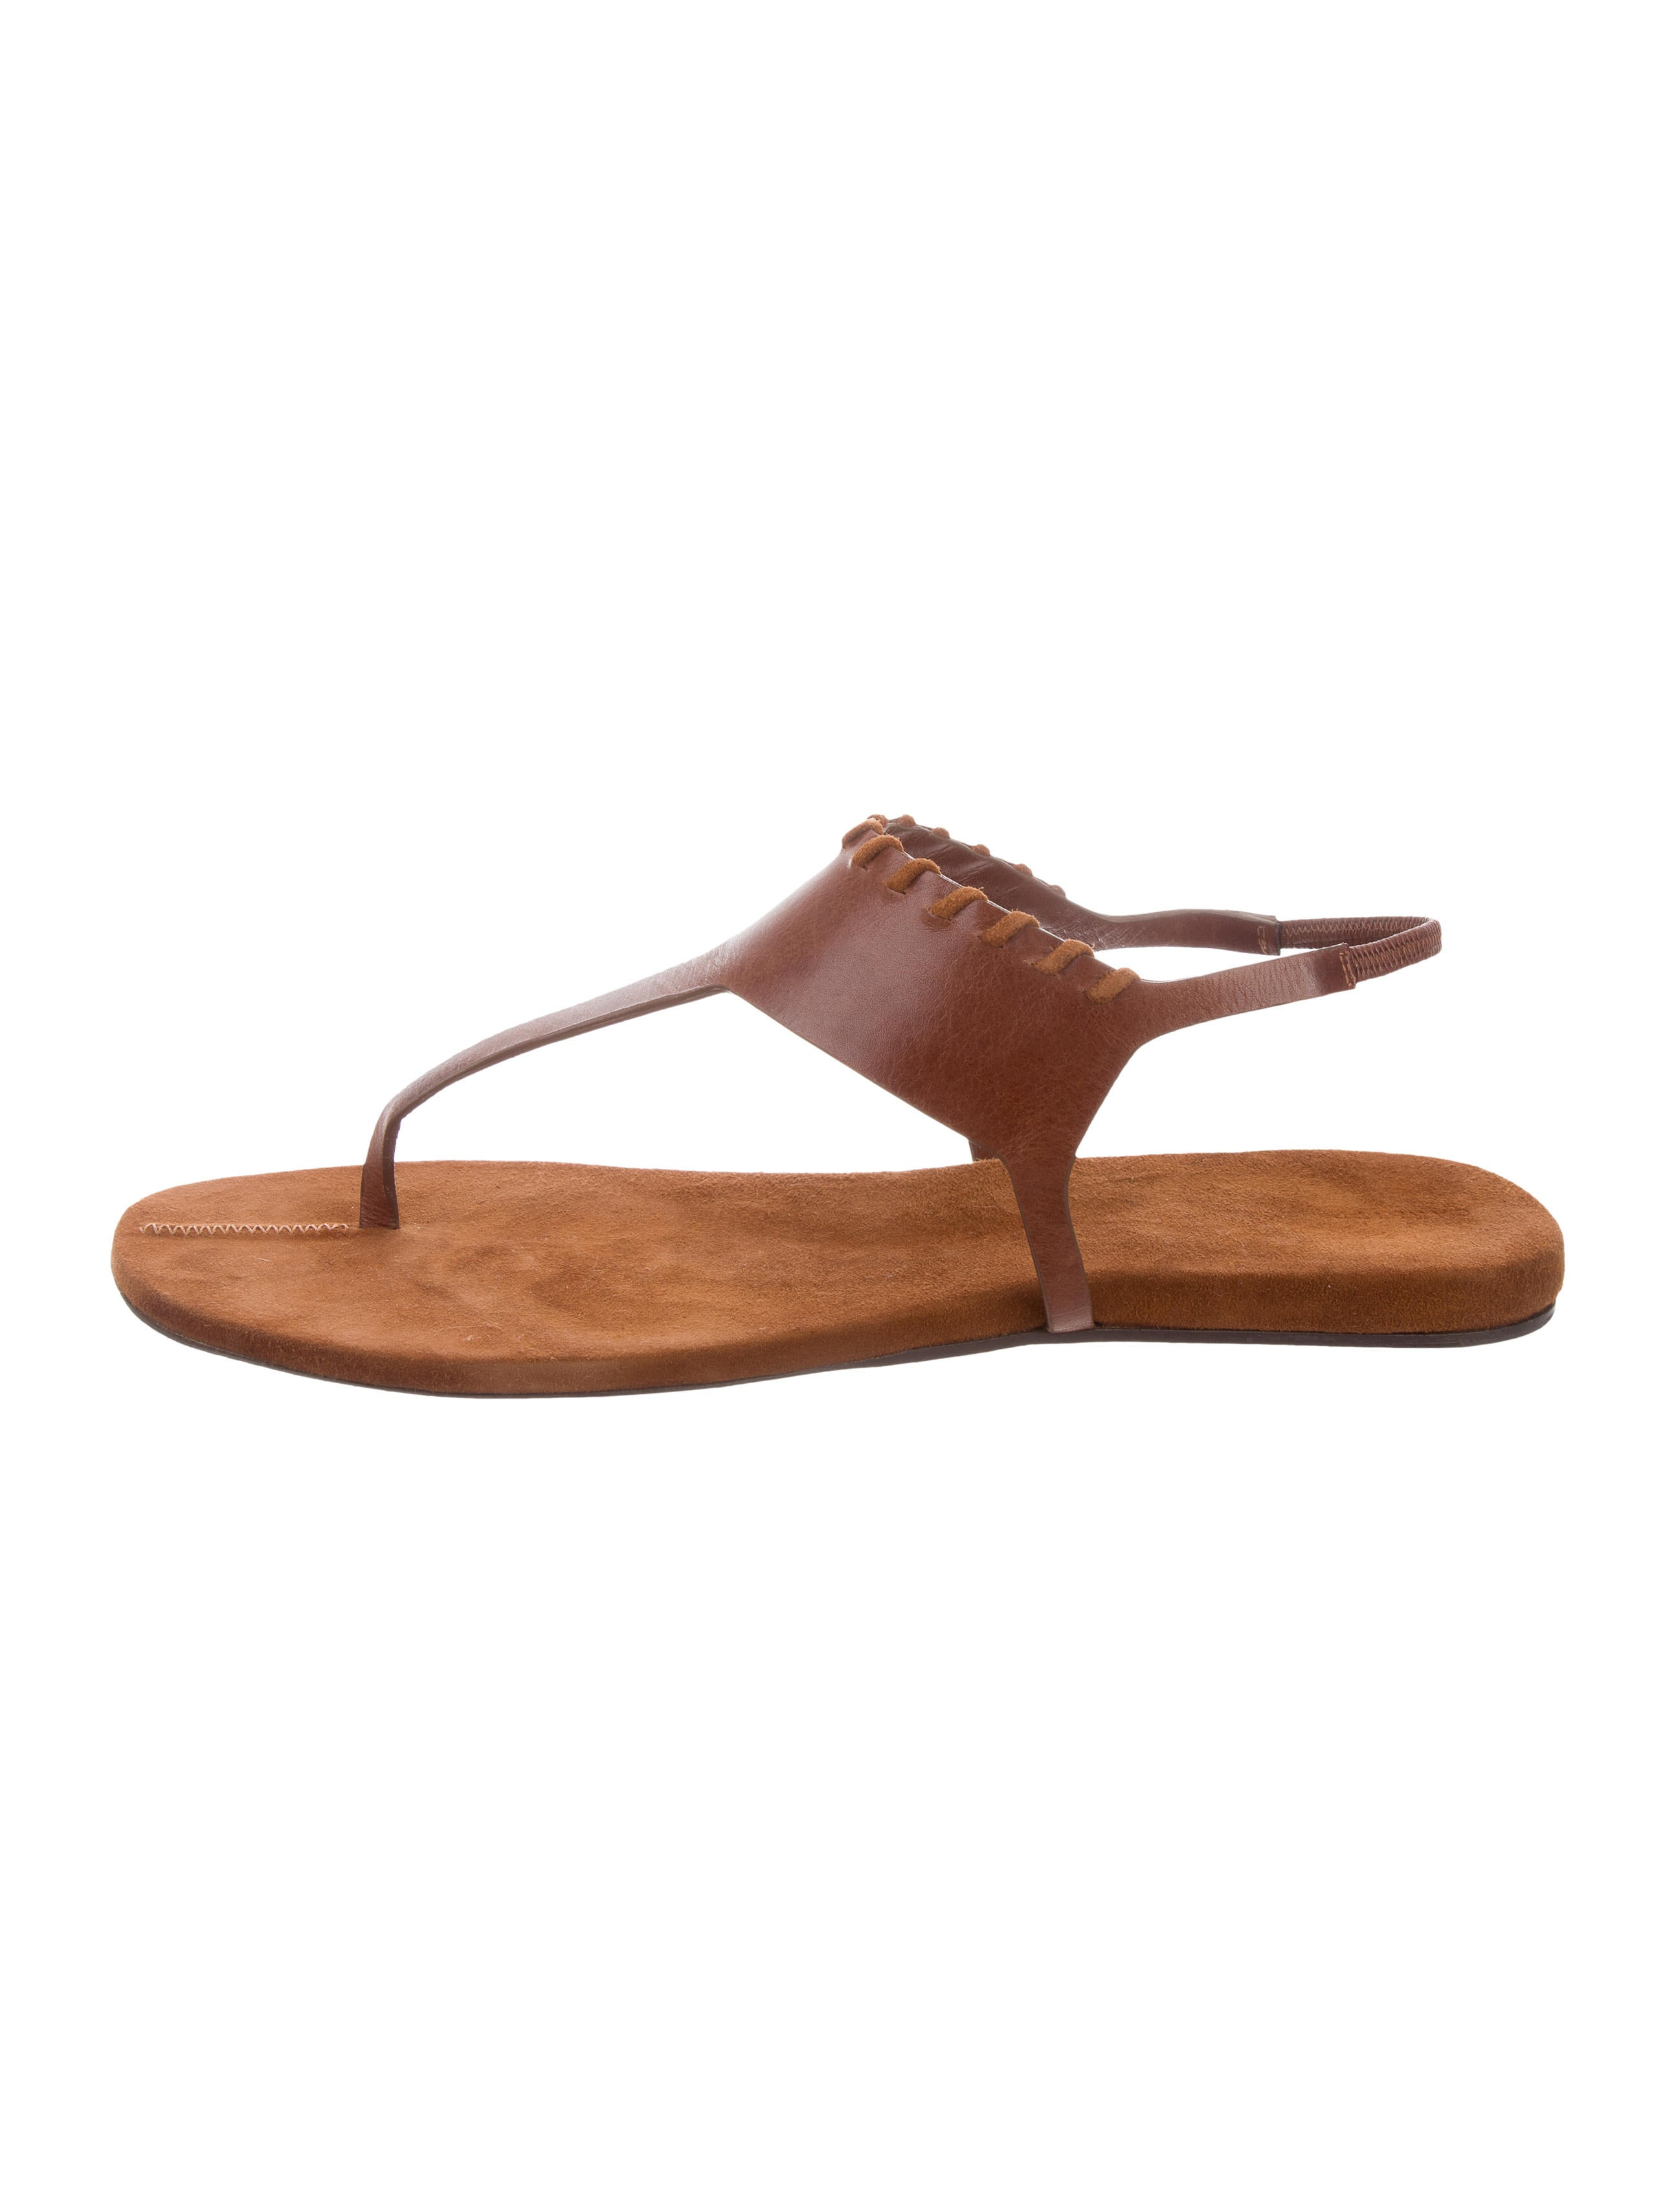 Carritz Leather Thong Sandals w/ Tags quality from china cheap sale best outlet best wholesale clearance lowest price for nice 1evAb8